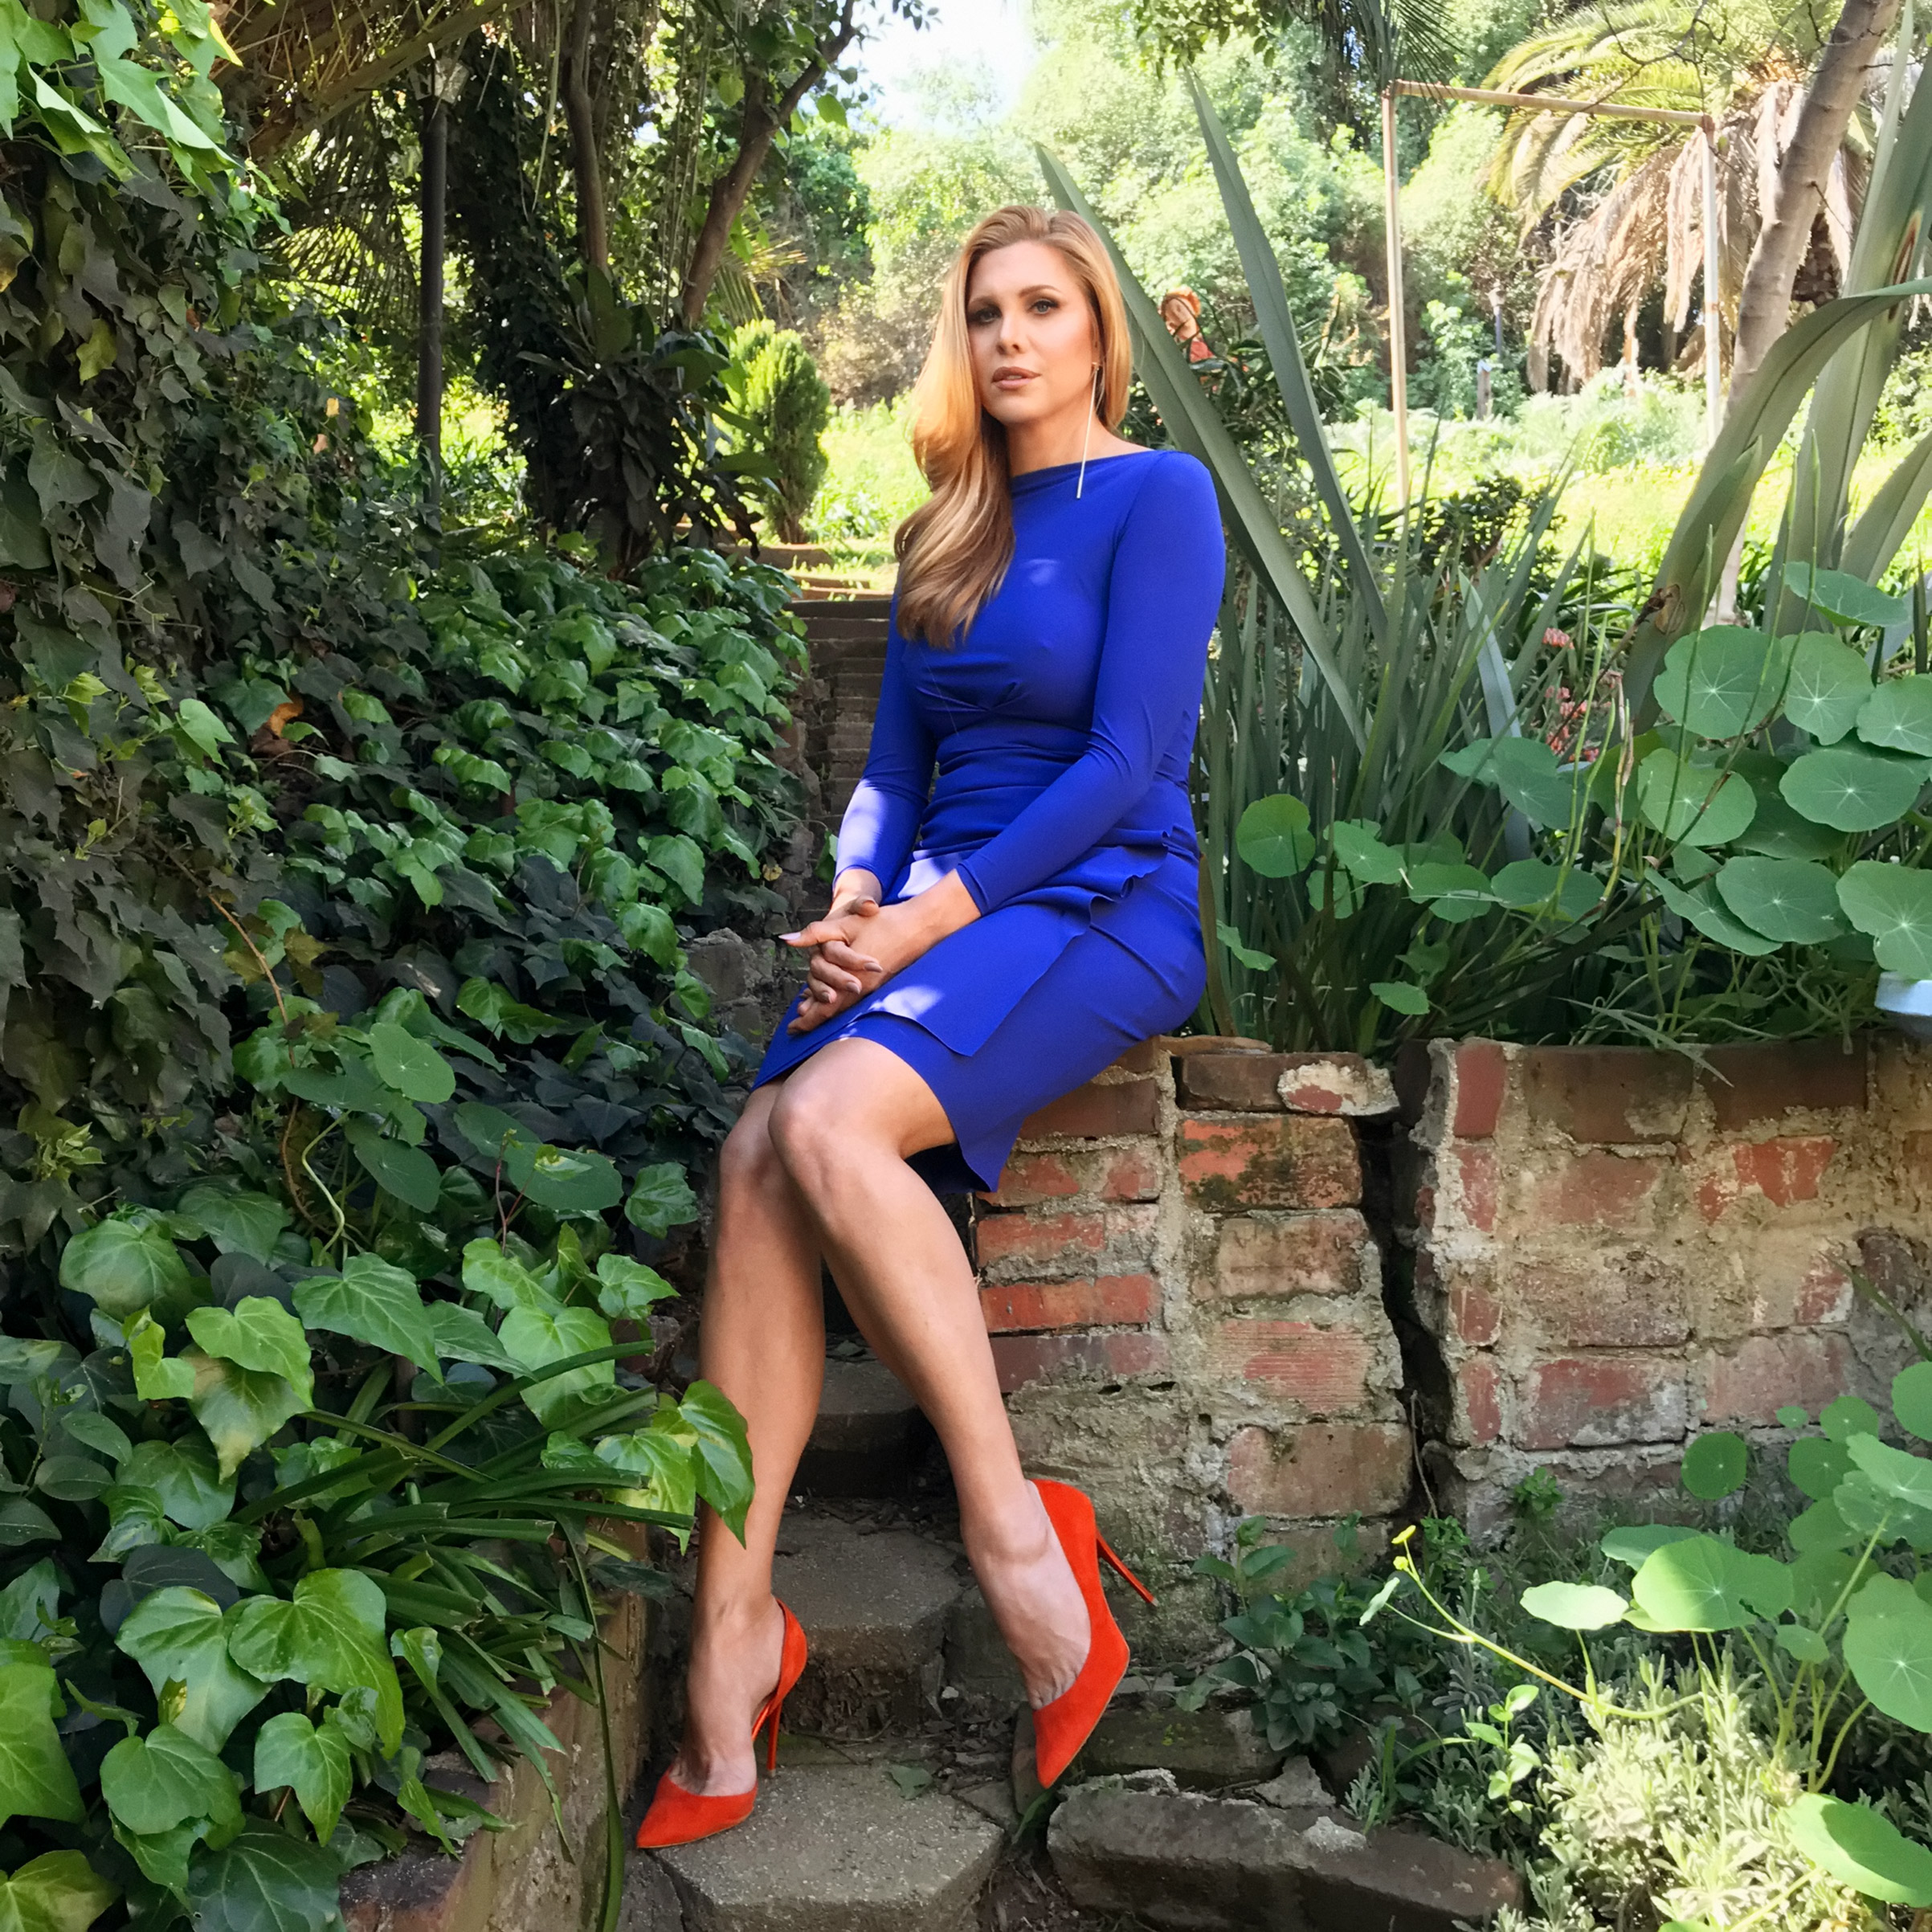 Portrait of Candis Cayne, photographed at her home in Glendale, CA, on March 11, 2017.